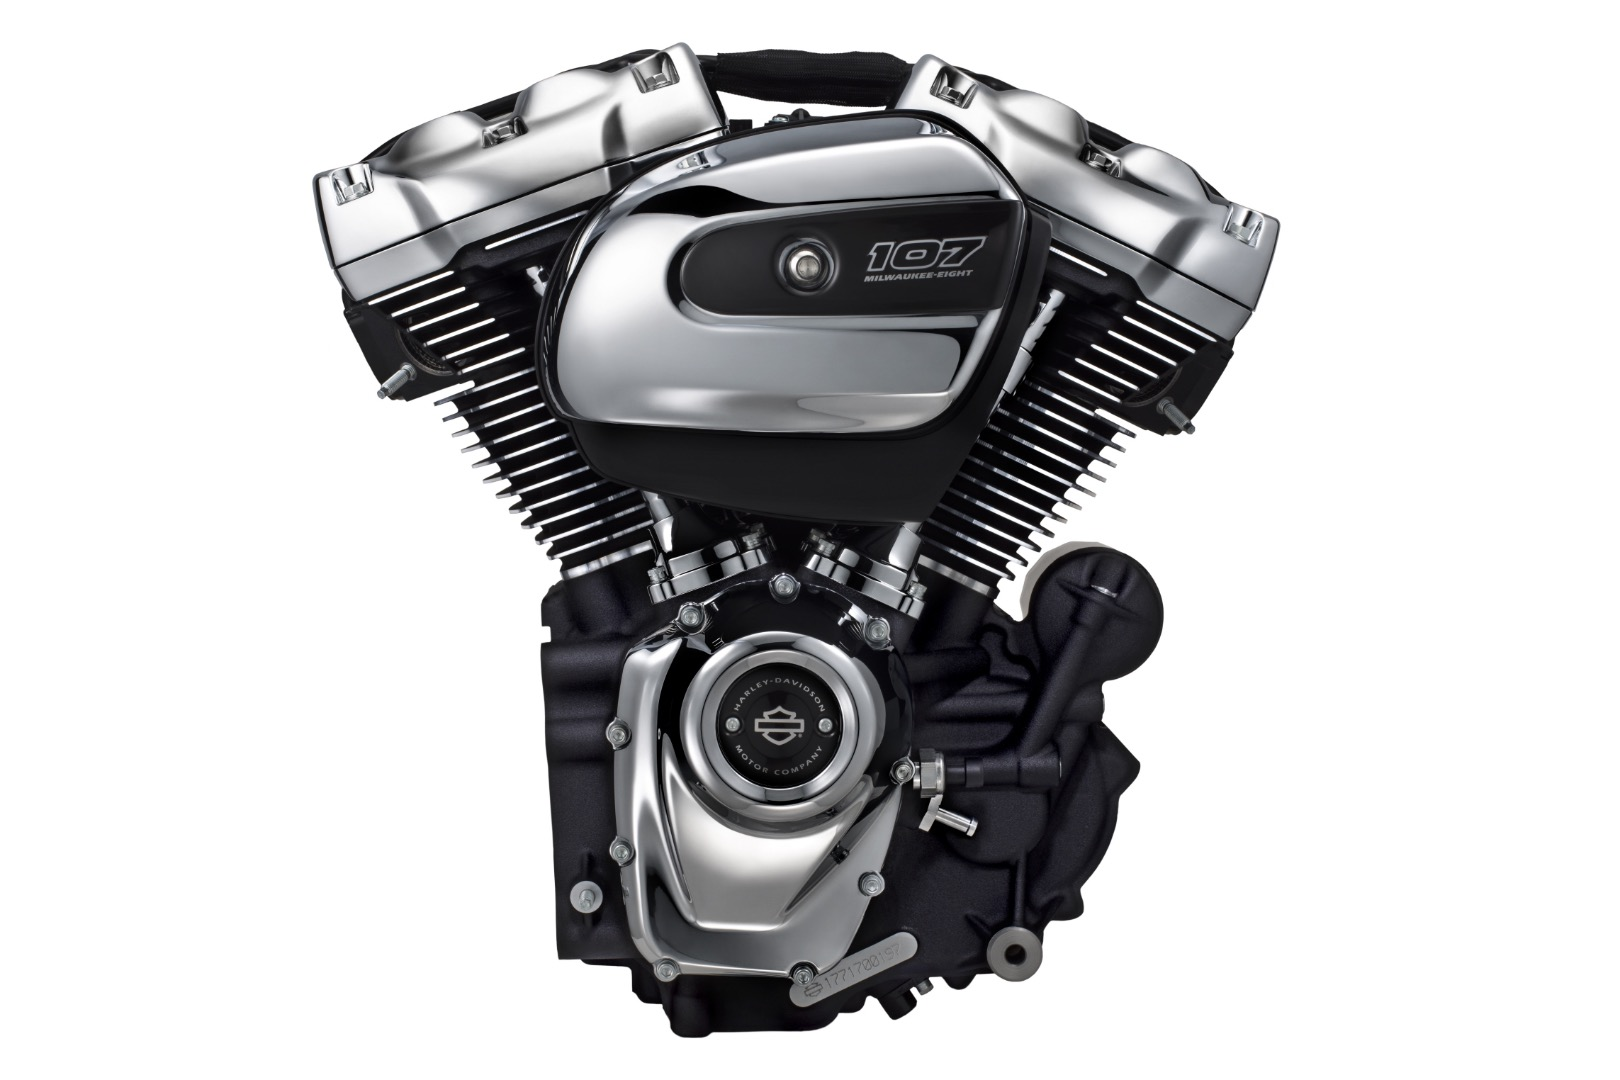 2017 harley davidson milwaukee eight engines 11 fast facts Harley Davidson Engine Design Harley 45 Transmission Schematic Harley Davidson Cylinders